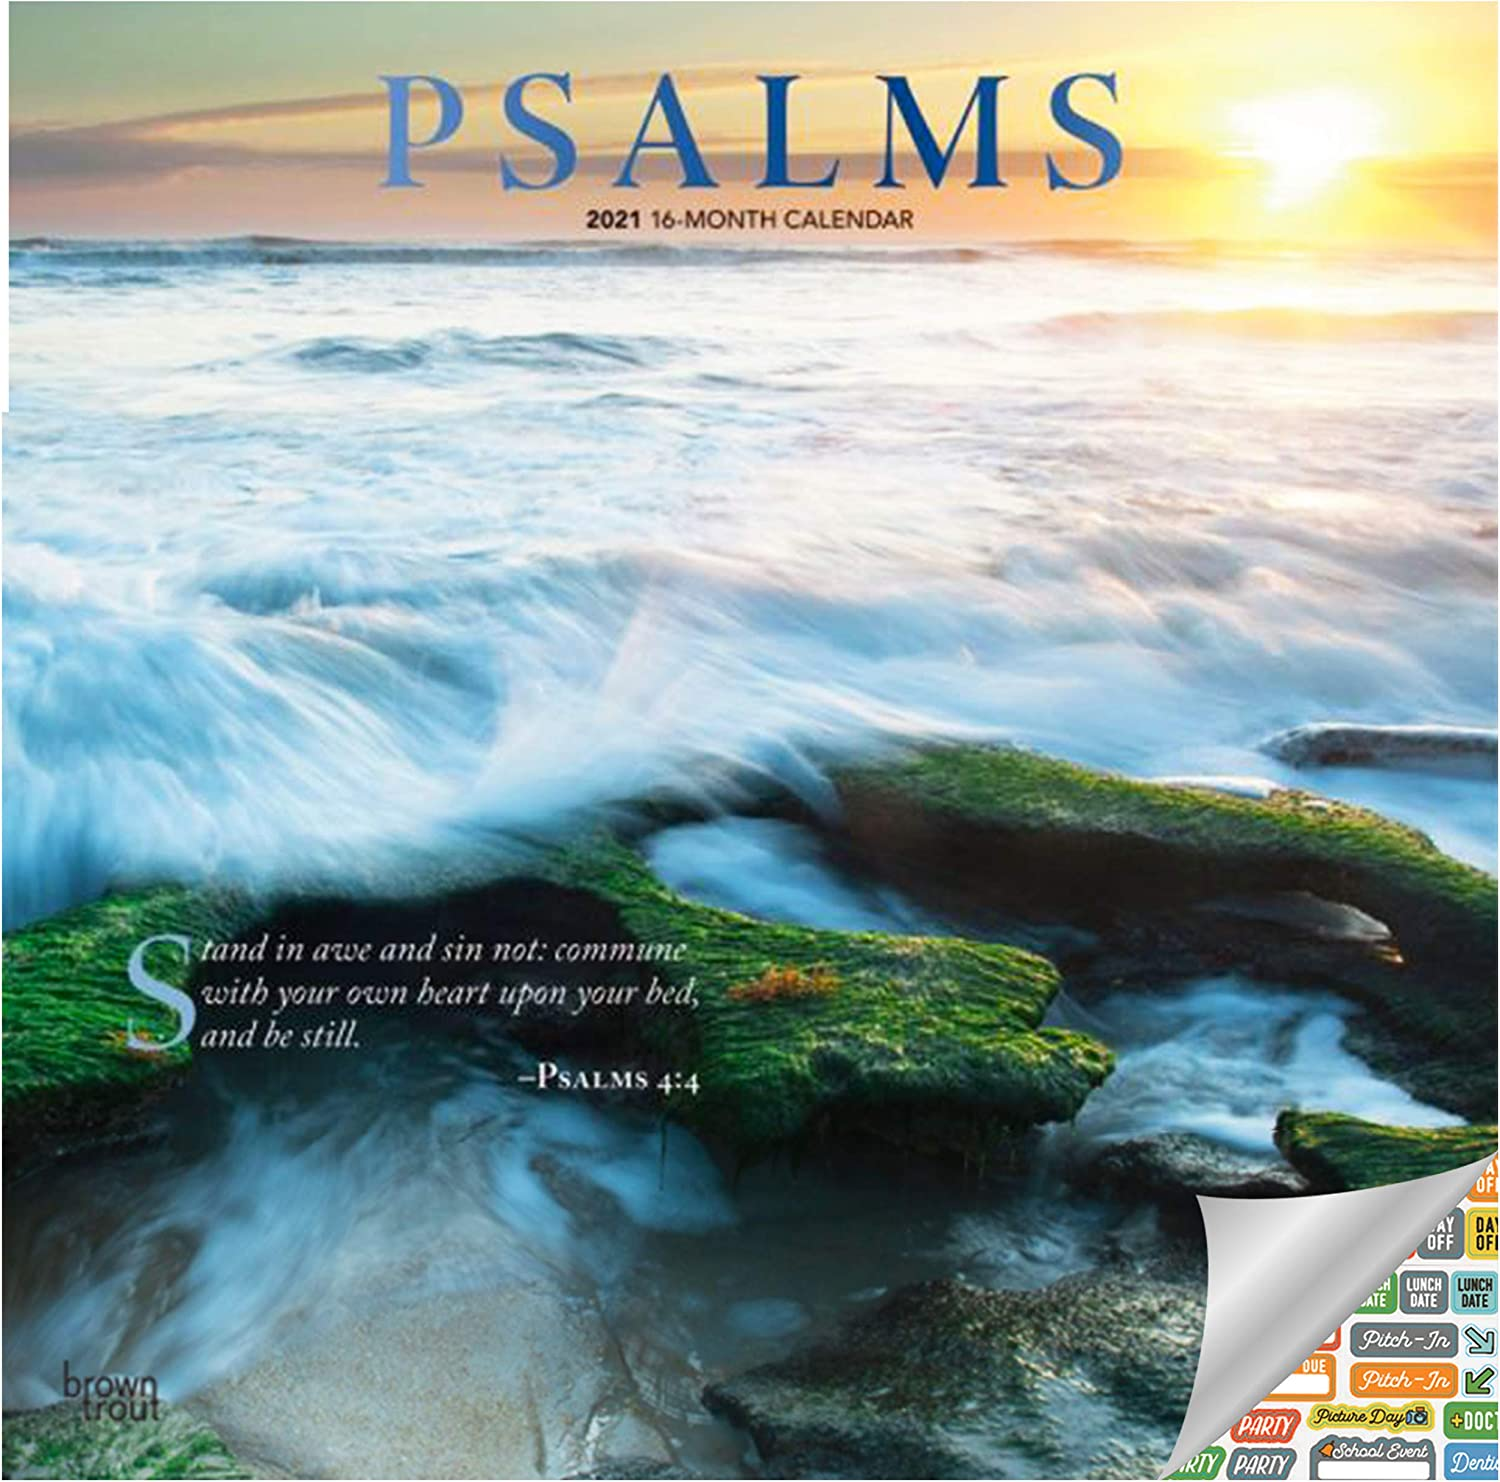 Psalms Calendar 2021 Bundle - Deluxe 2021 Bible Quotes Wall Calendar with Over 100 Calendar Stickers (Christian Gifts, Office Supplies)